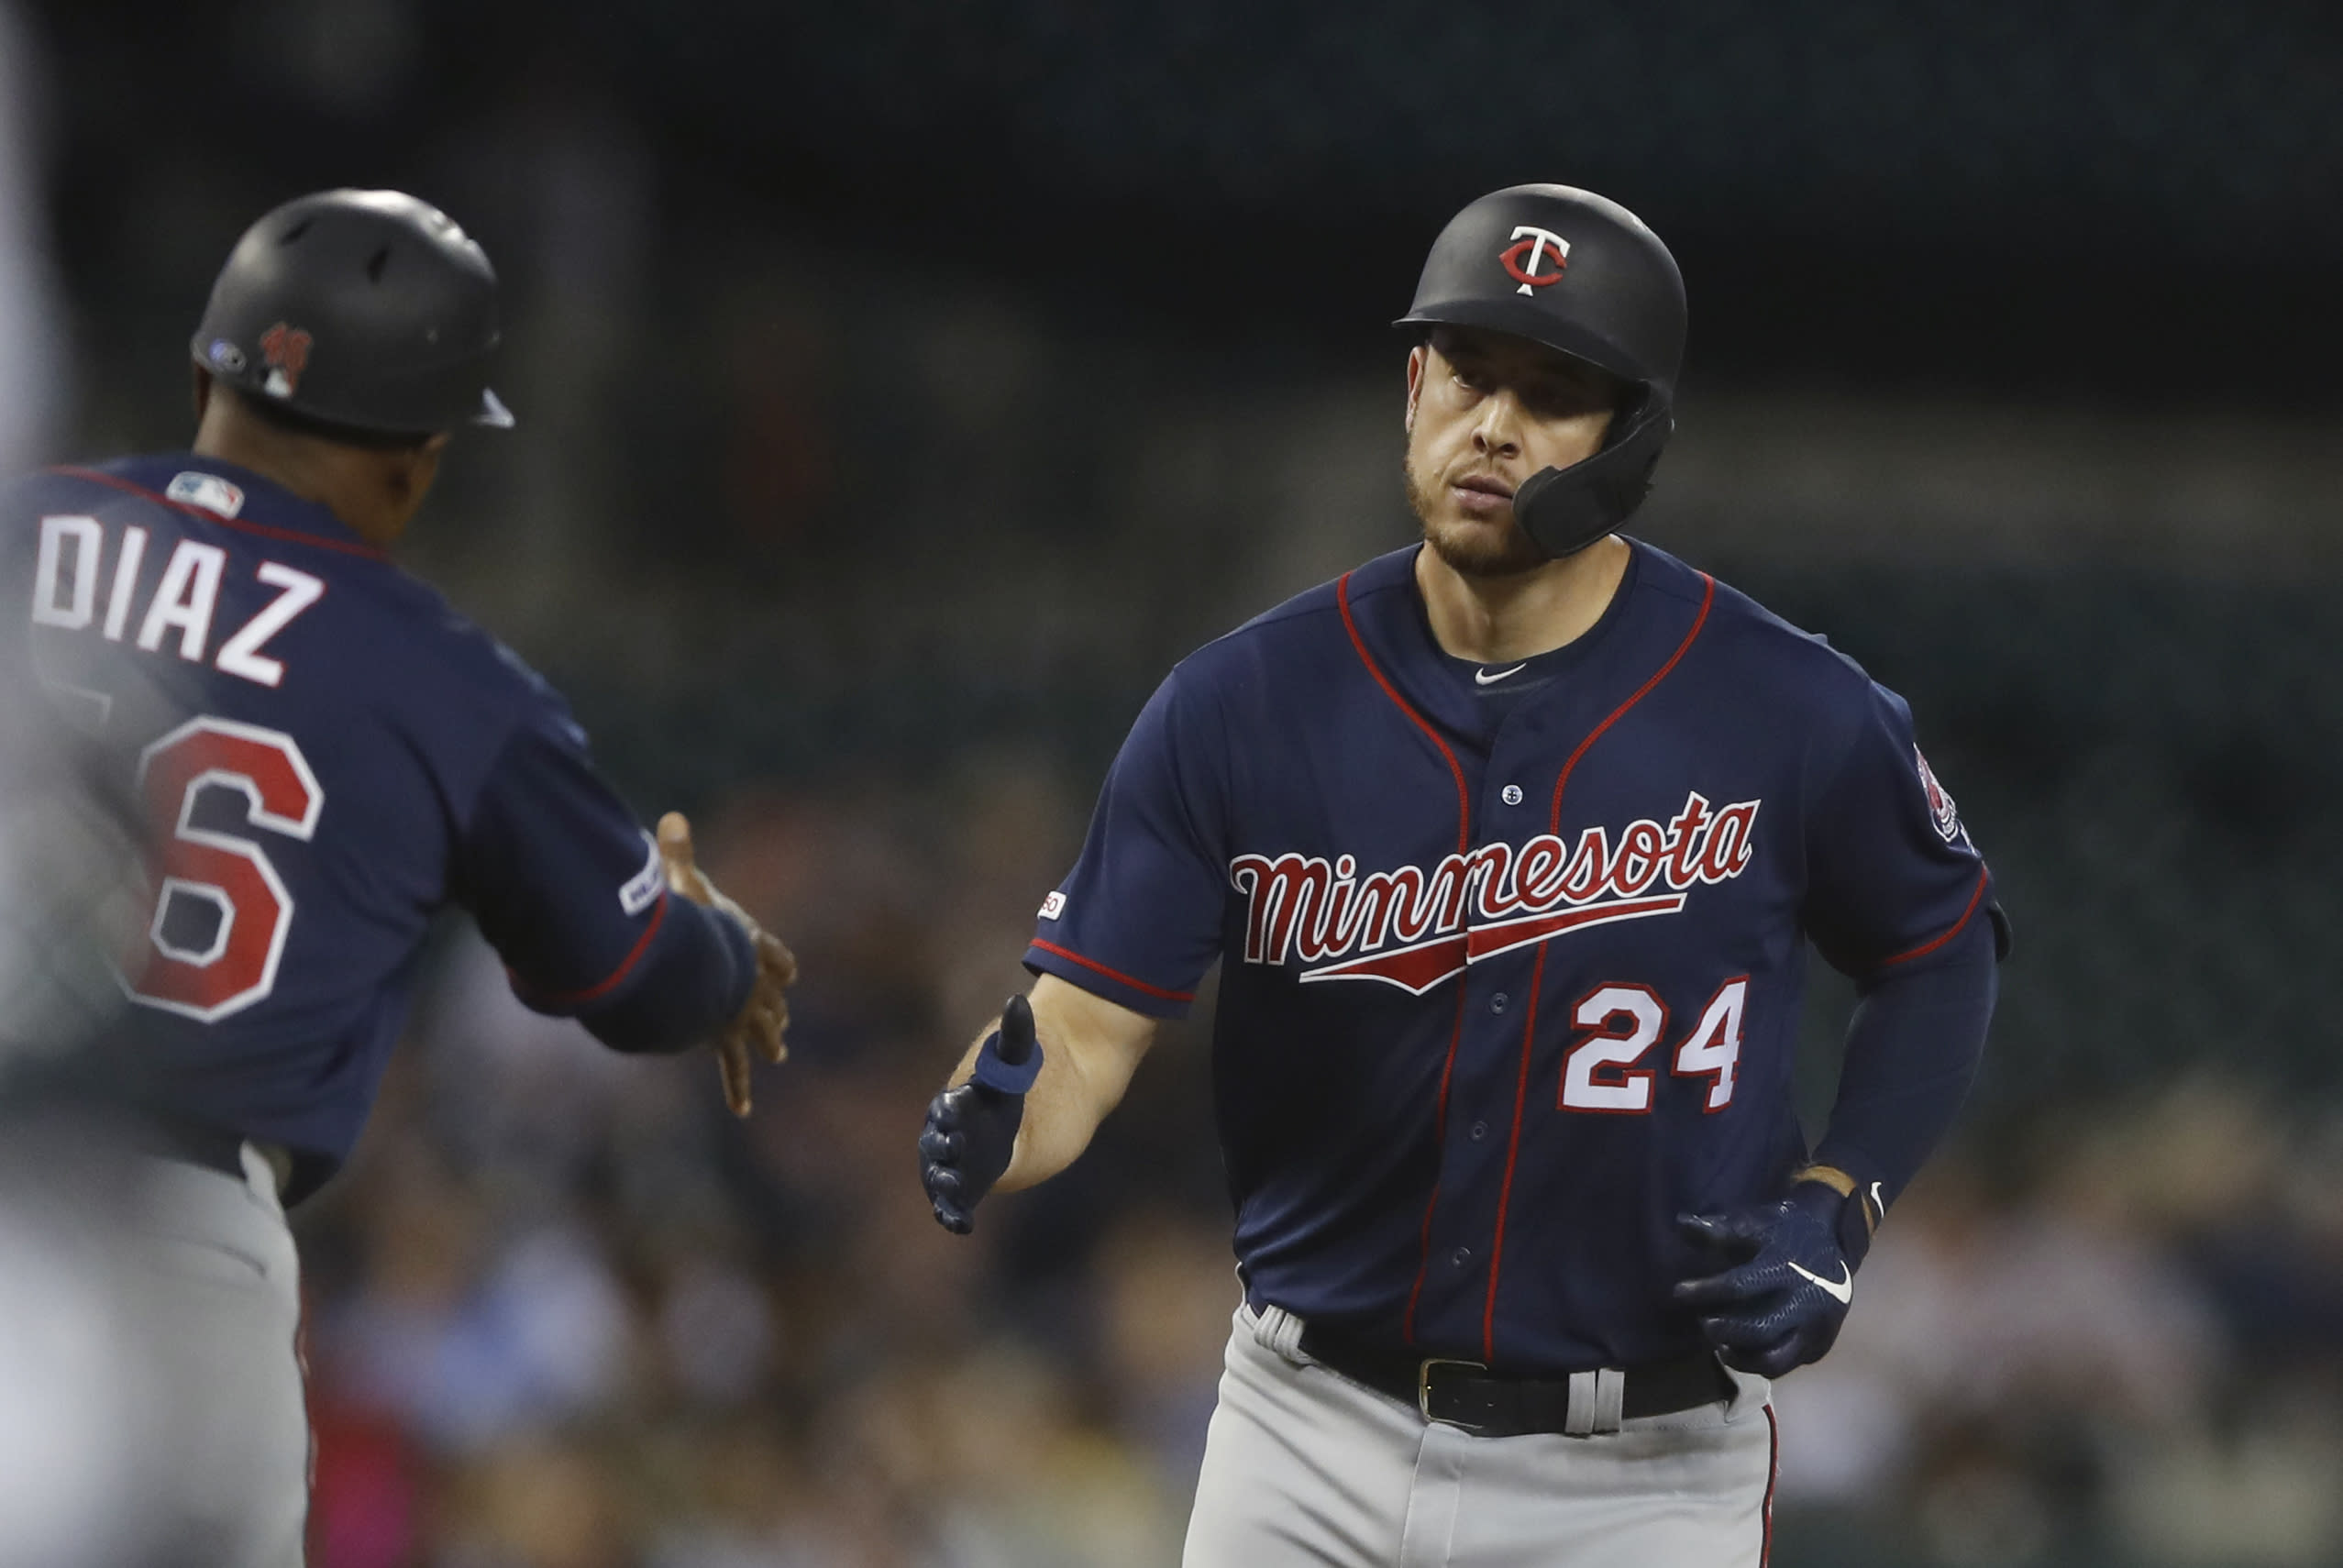 Minnesota Twins' C.J. Cron is greeted by third base coach Tony Diaz after a solo home run during the sixth inning of a baseball game against the Detroit Tigers, Saturday, Aug. 31, 2019, in Detroit. (AP Photo/Carlos Osorio)